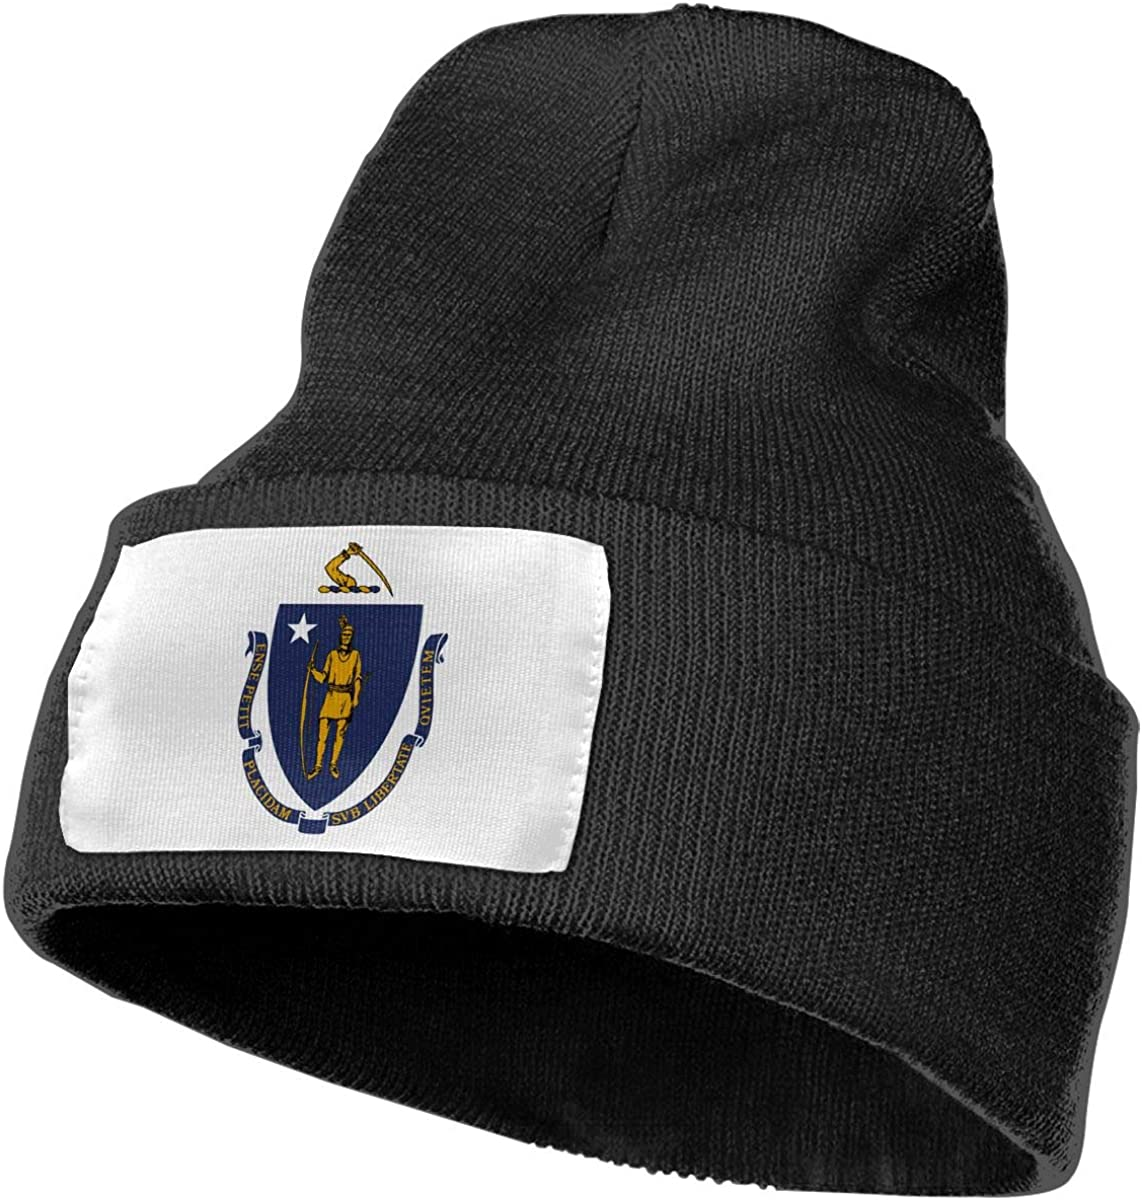 Flag of Massachusetts-MA Men/&Women Warm Winter Knit Plain Beanie Hat Skull Cap Acrylic Knit Cuff Hat